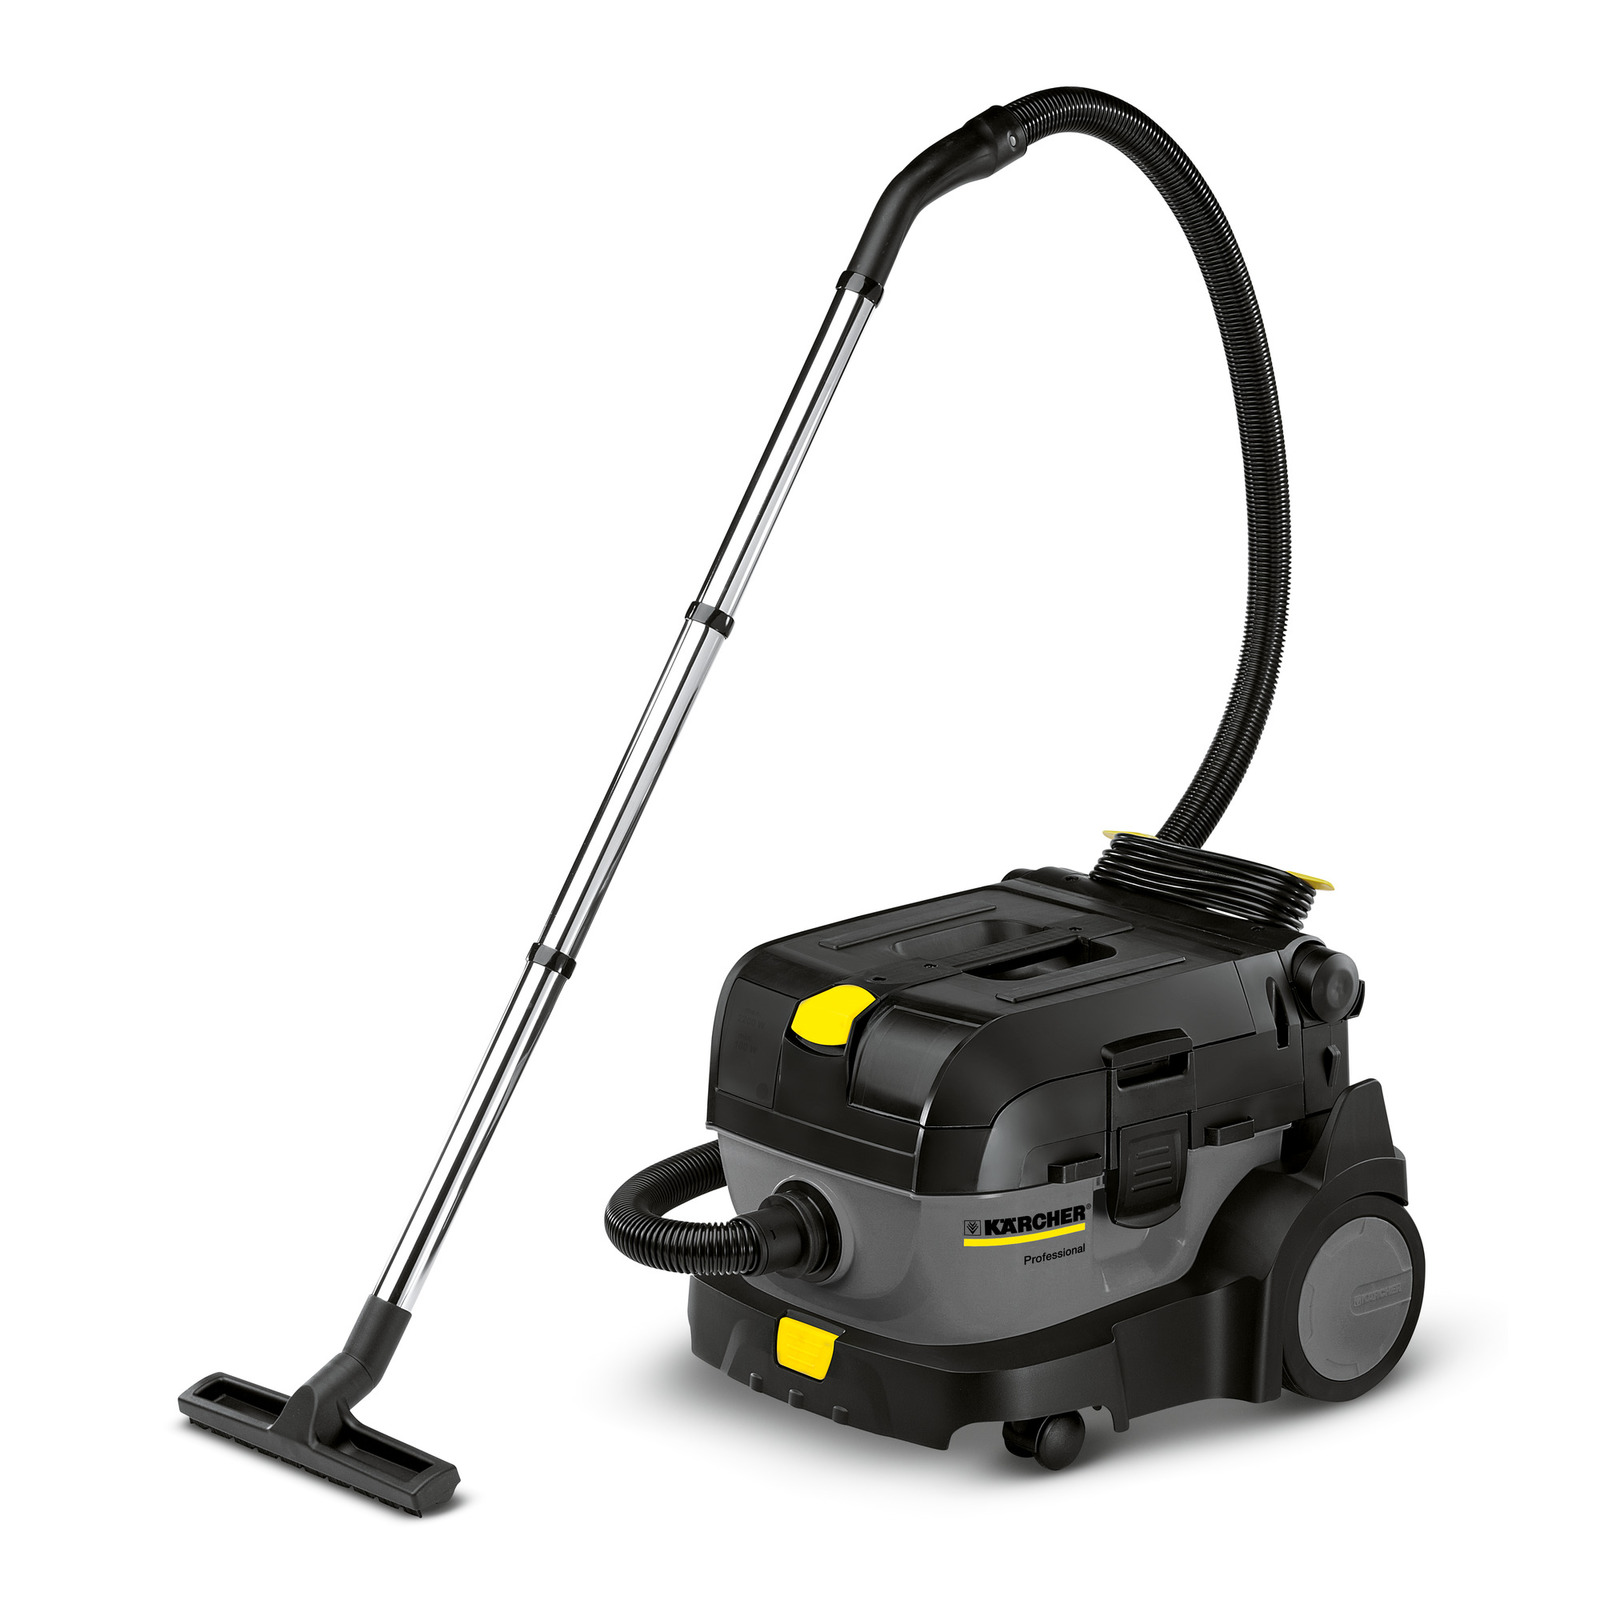 aspirateur karcher maison latest krcher u aspirateur with aspirateur karcher maison aspirateur. Black Bedroom Furniture Sets. Home Design Ideas